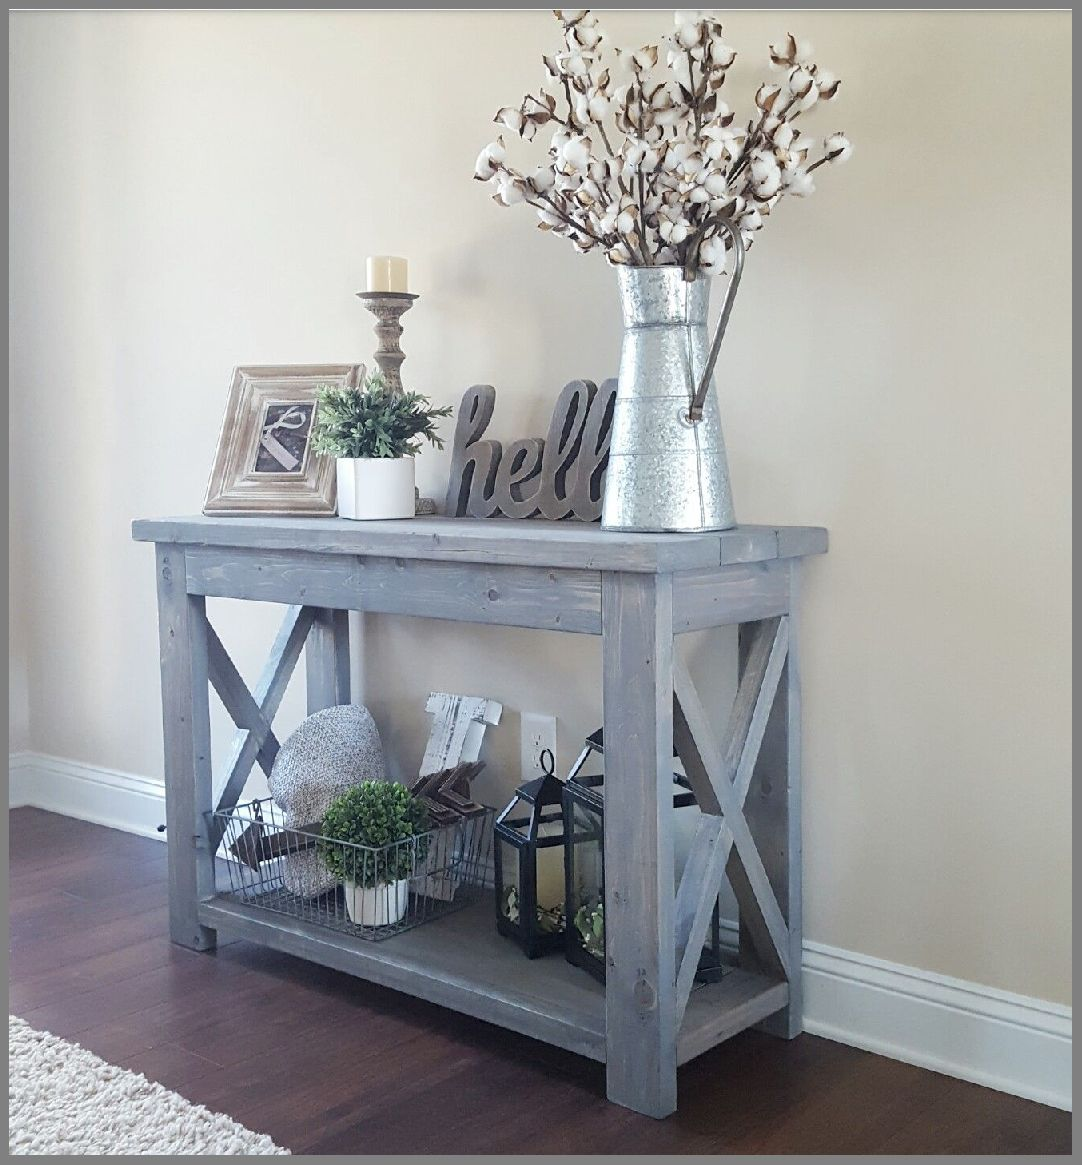 wonderfull hall accent table half moon tables for entryway foyer modified ana whites rustic console and used classic small white bedside lockers trestle dimensions outdoor wicker